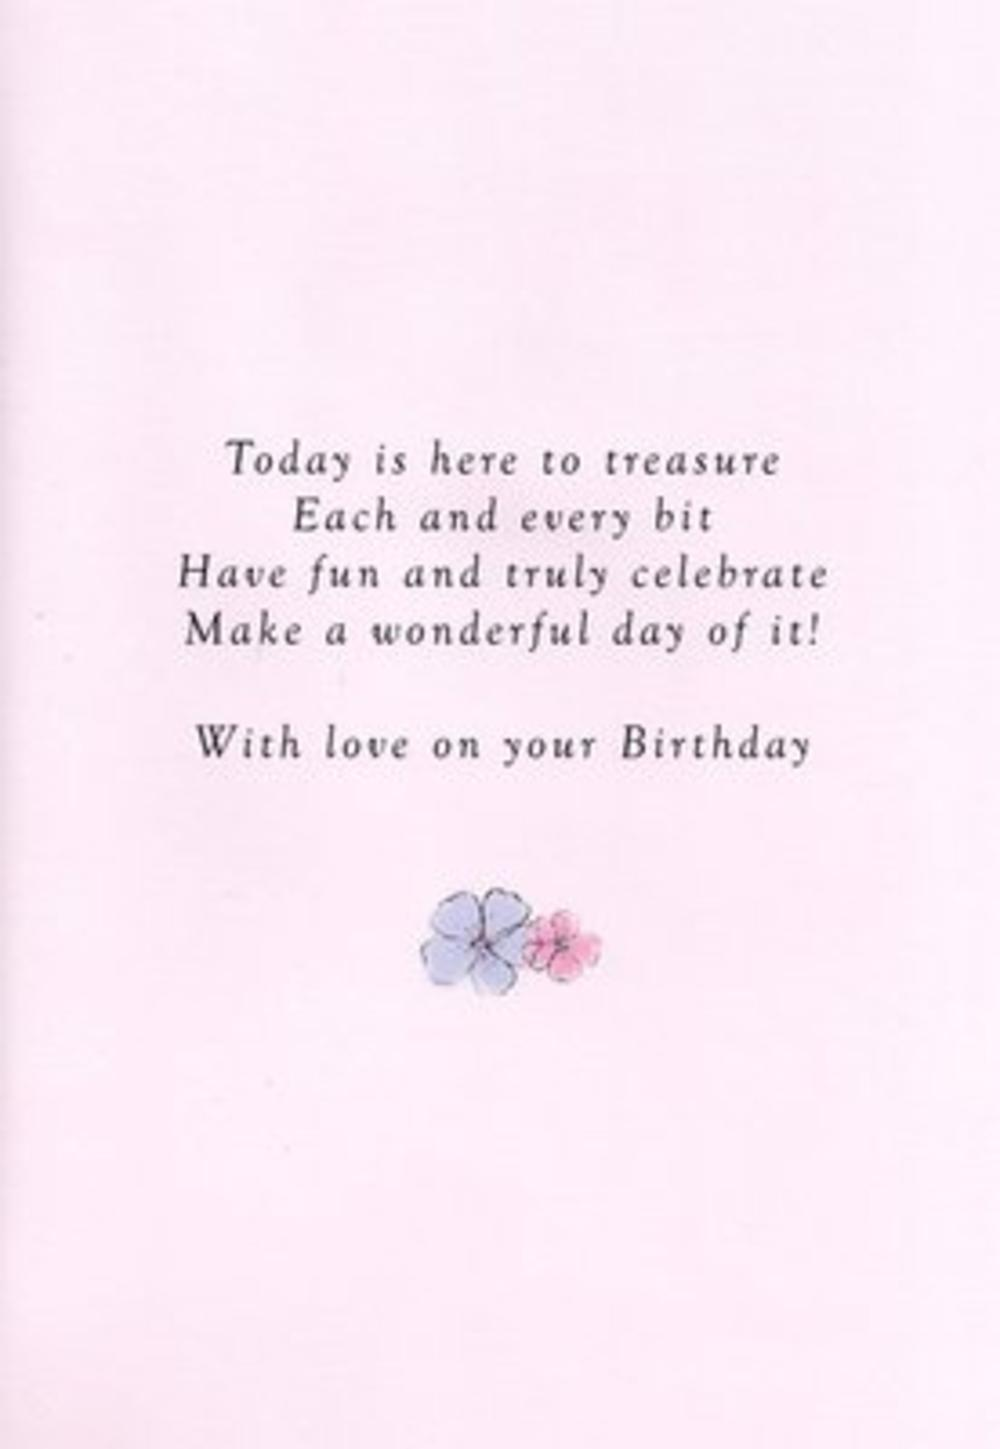 Mum birthday poetry in motion card cards love kates thumbnail 2 bookmarktalkfo Images